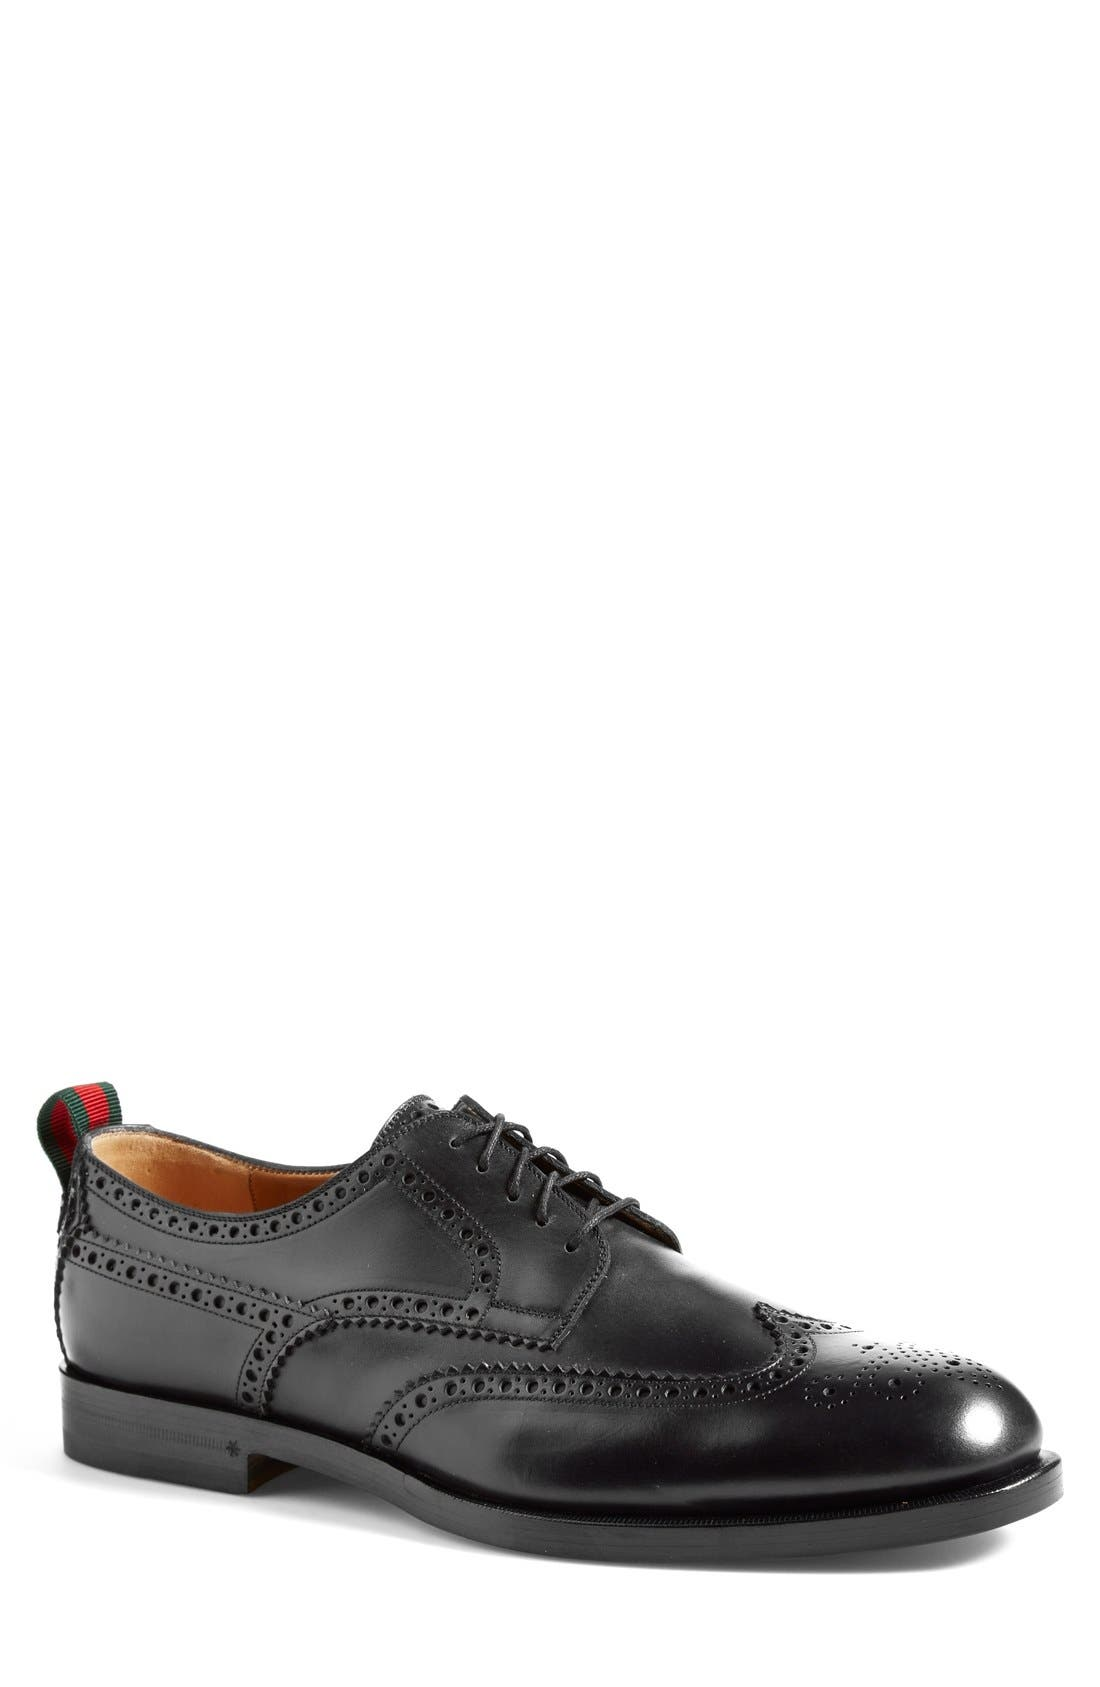 Gucci 'Strand' Wingtip Oxford (Men)